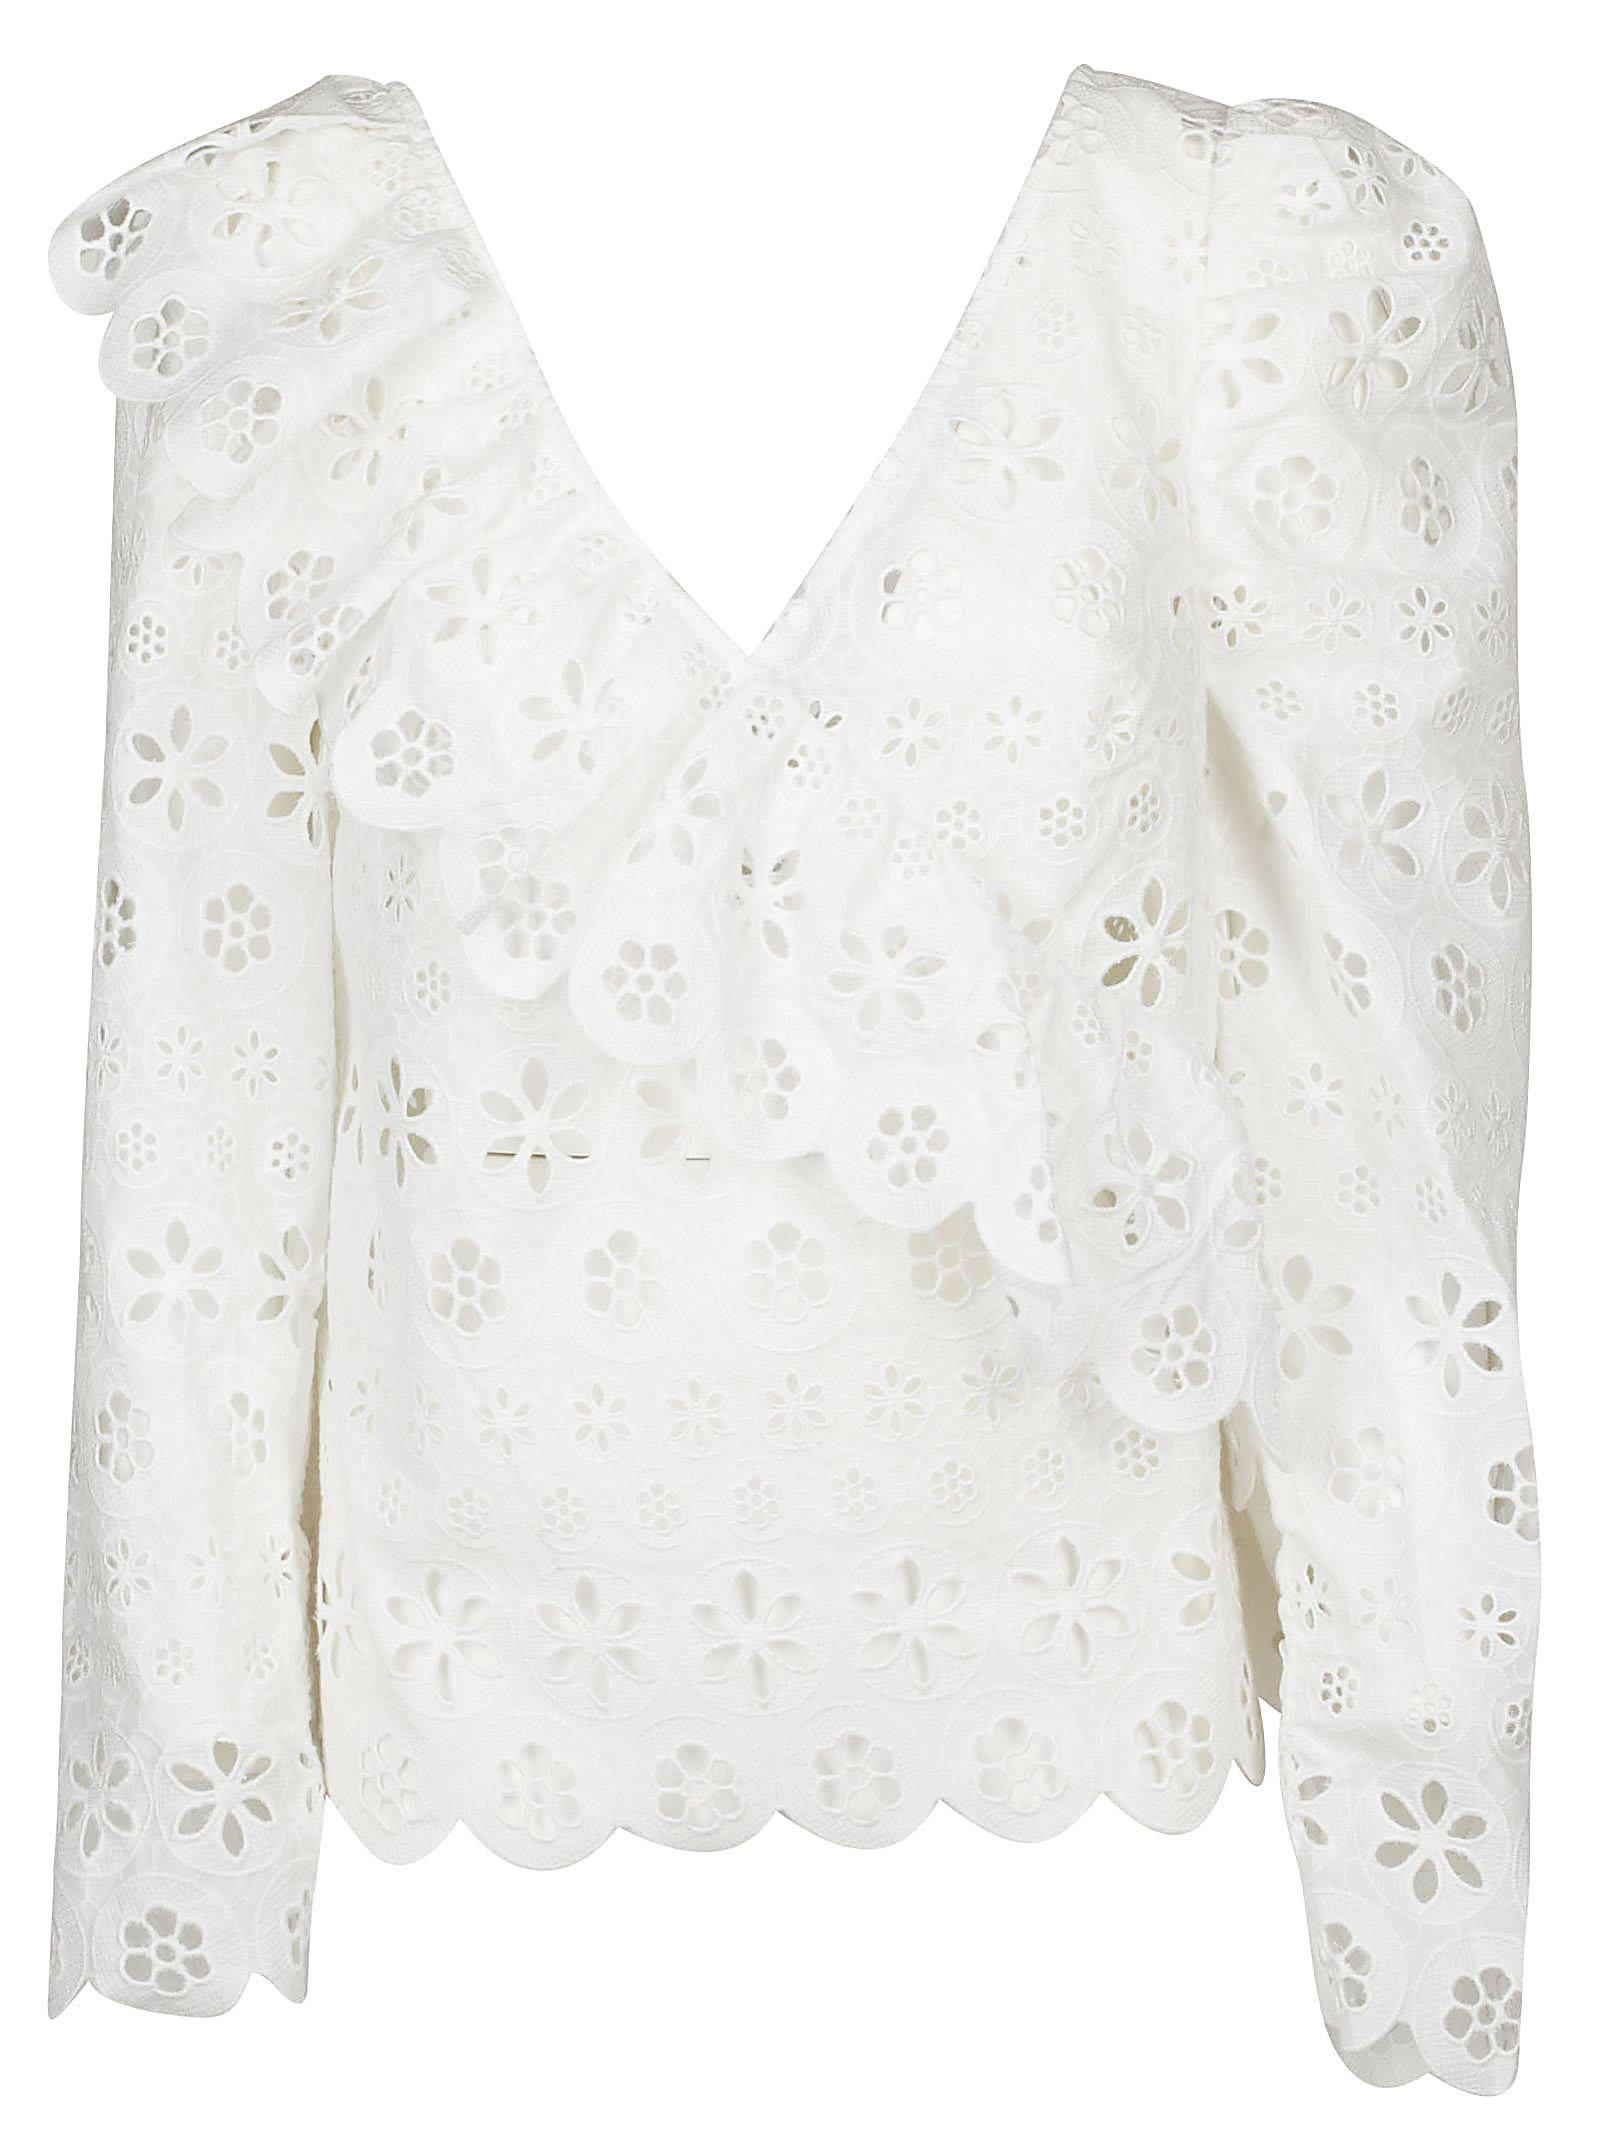 Self-Portrait floral broderie frill top Clearance Pay With Visa Many Kinds Of Cheap Online Buy Online New Brand New Unisex Cheap Price Cool gEJG8